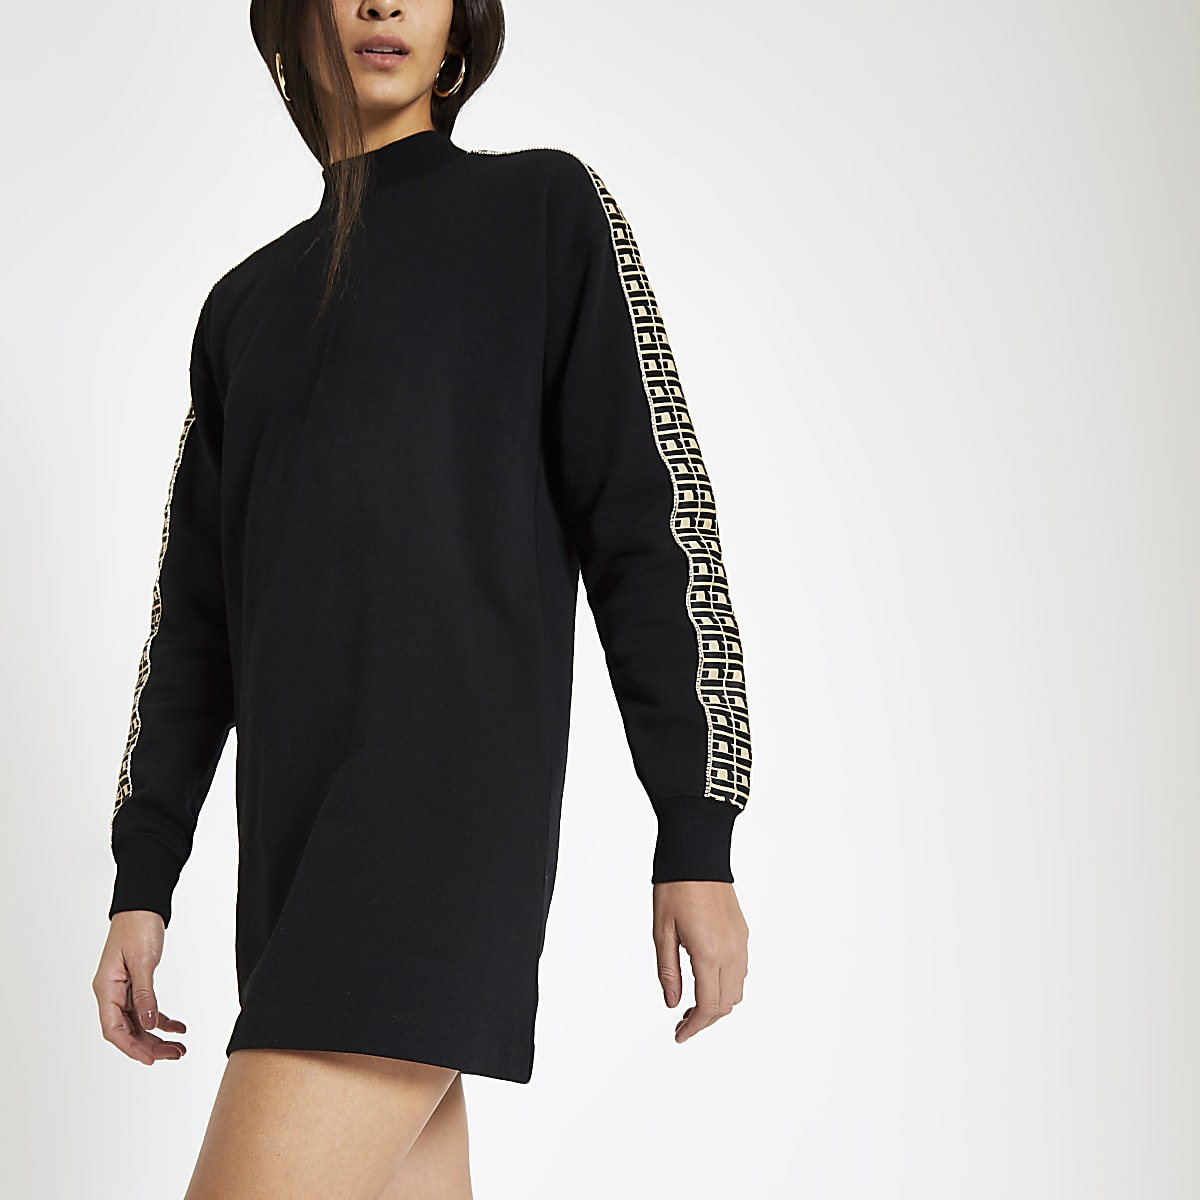 Black RI diamante trim jumper dress